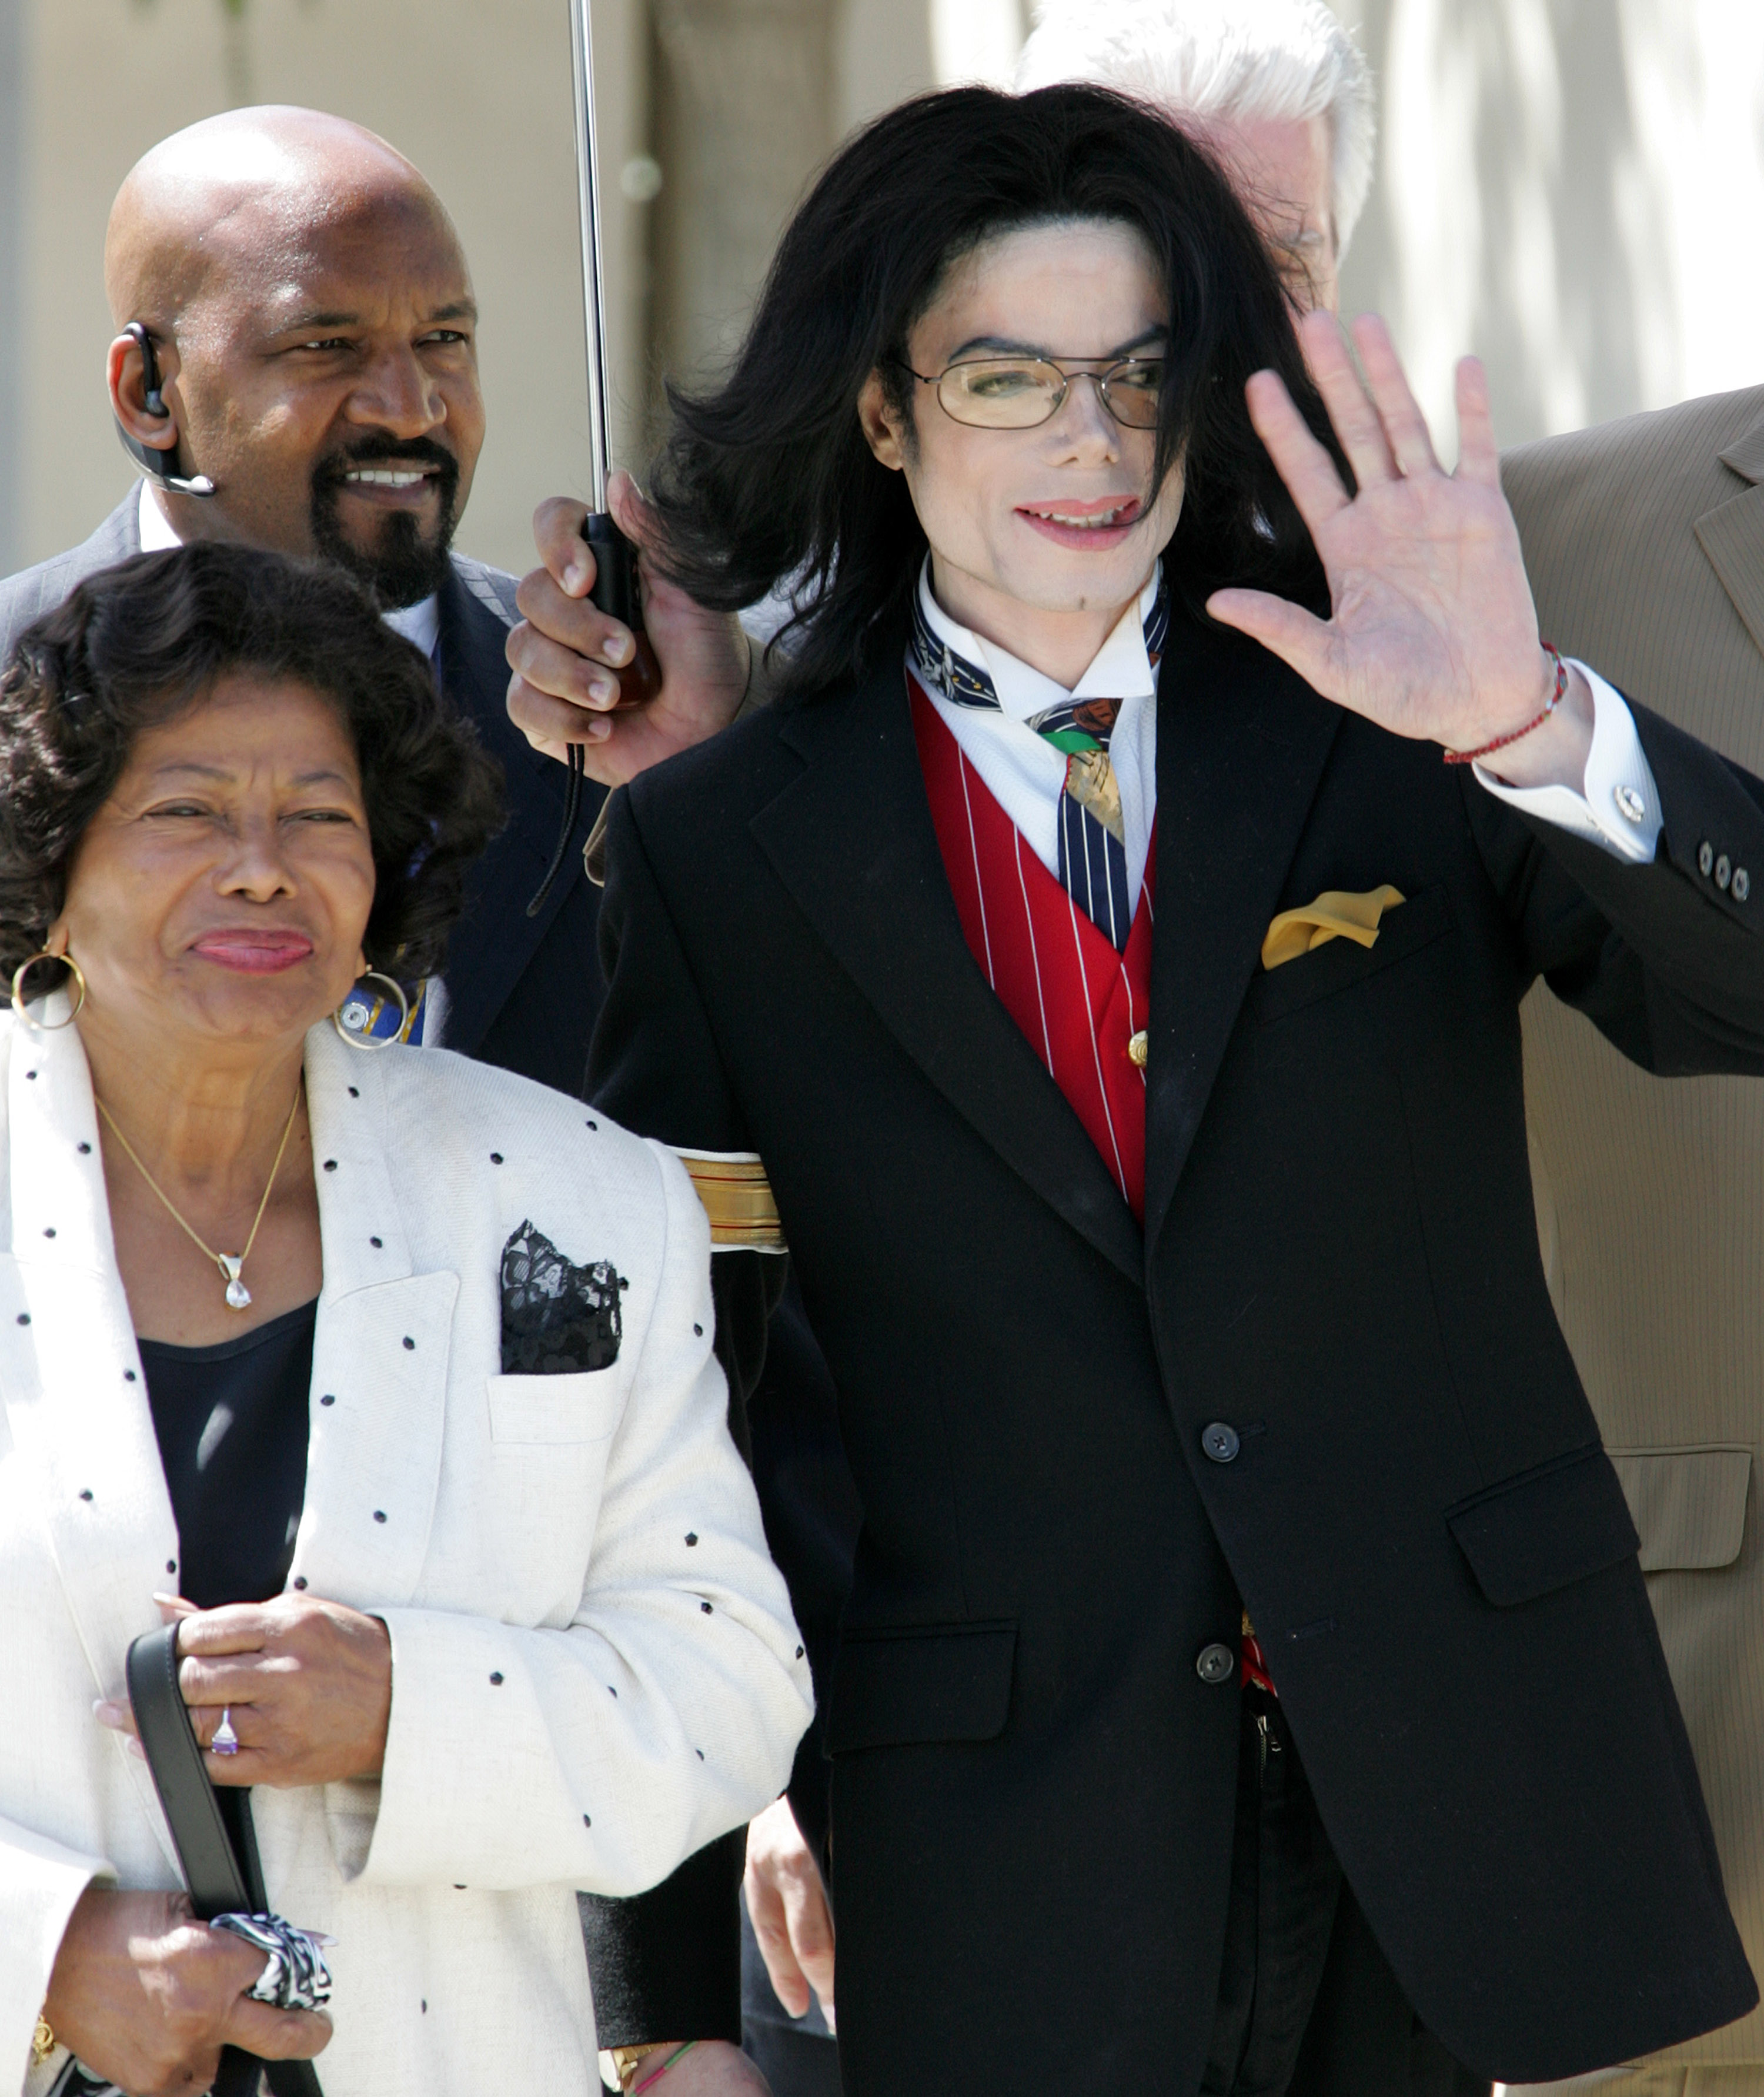 Michael Jackson waves to fans as he leaves the courthouse with his mother Katherine during his trial on child molestation charges April 11, 2005 in Santa Maria, California. Today, the mother of a teenage boy at the center of 1993 molestation accusations testified that Jackson begged her to allow the boy to share his bed. The boy stopped cooperating with police after a reported $23 million settlement from the pop star.